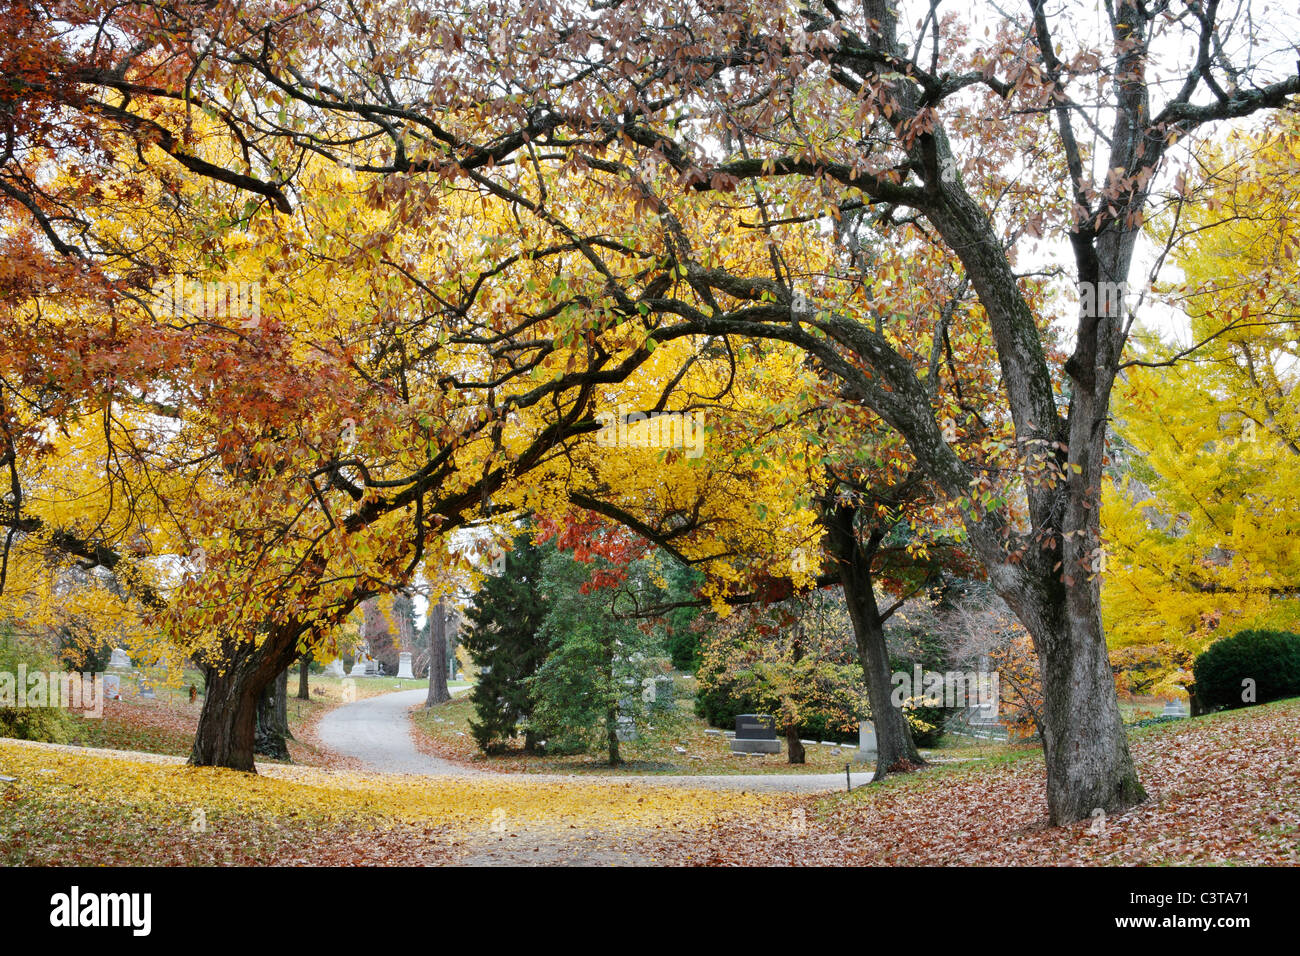 A Canopy Of Blazing Yellow Trees Over A Quiet Cemetery Road In Autumn, Southwestern Ohio, USA - Stock Image